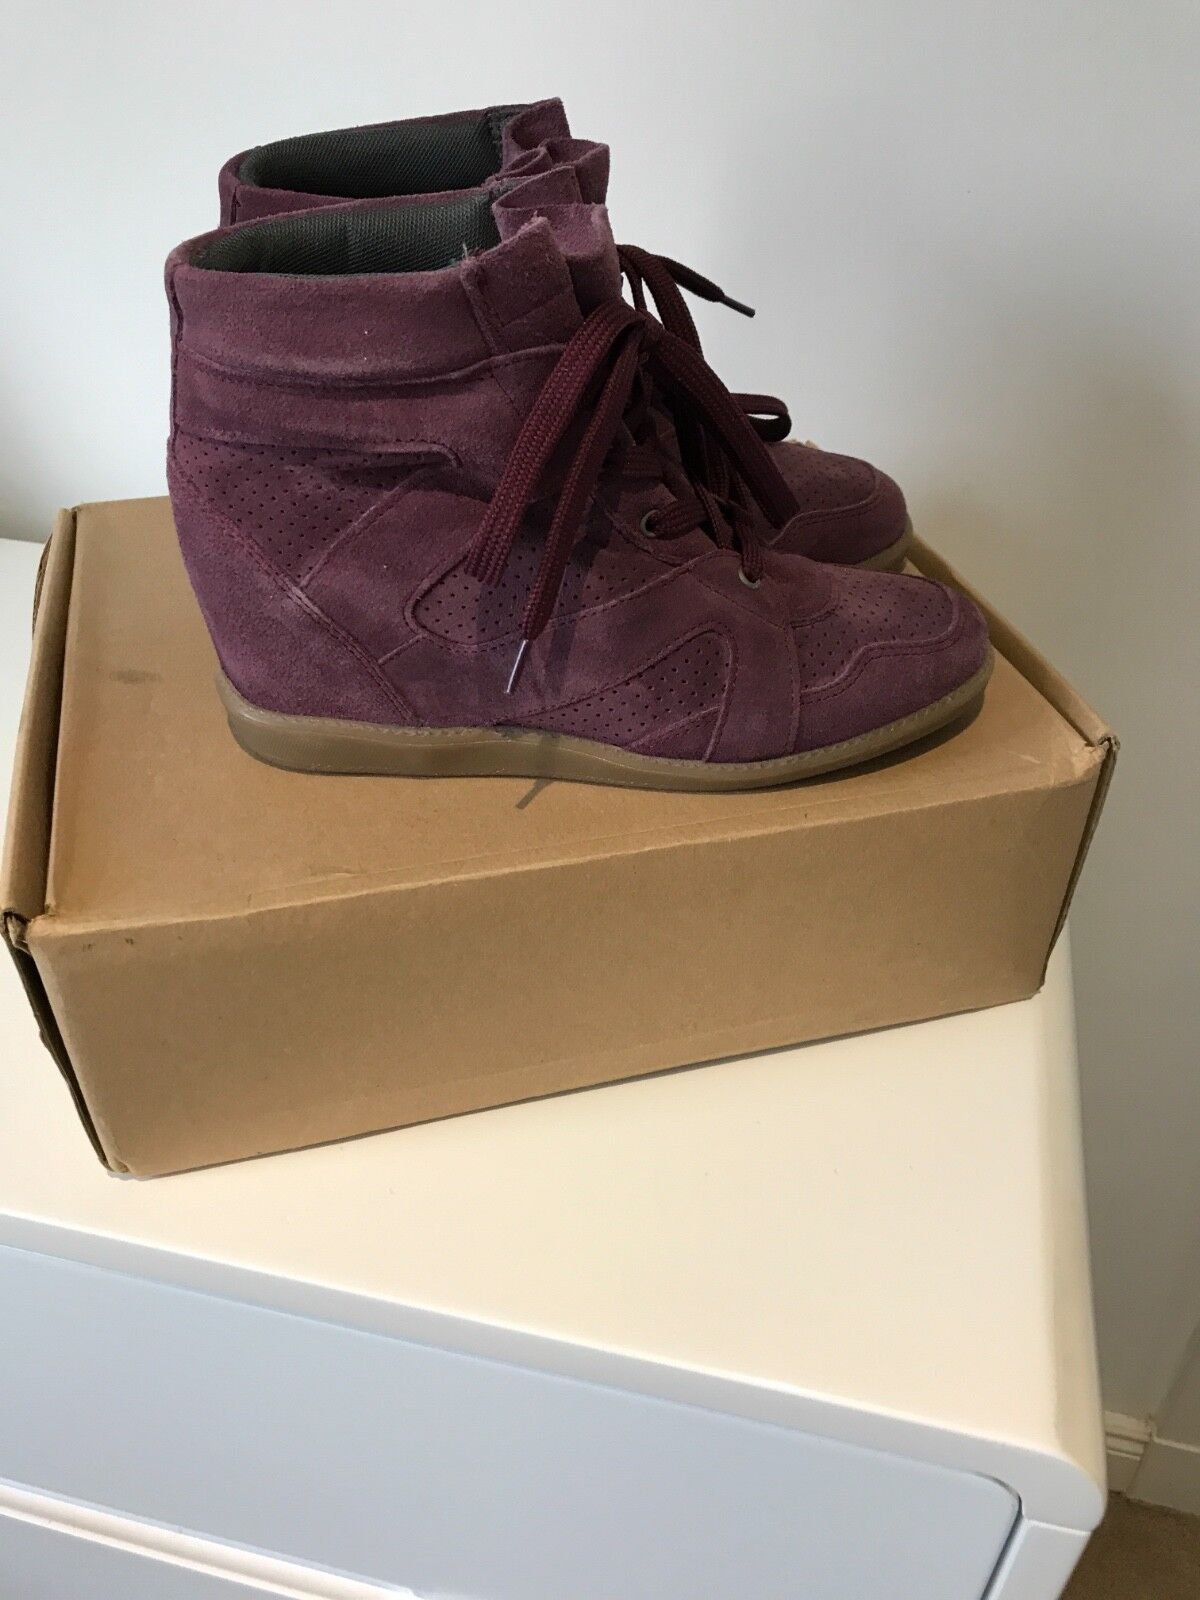 Cara london purple grape wedge trainers size 5 only worn once